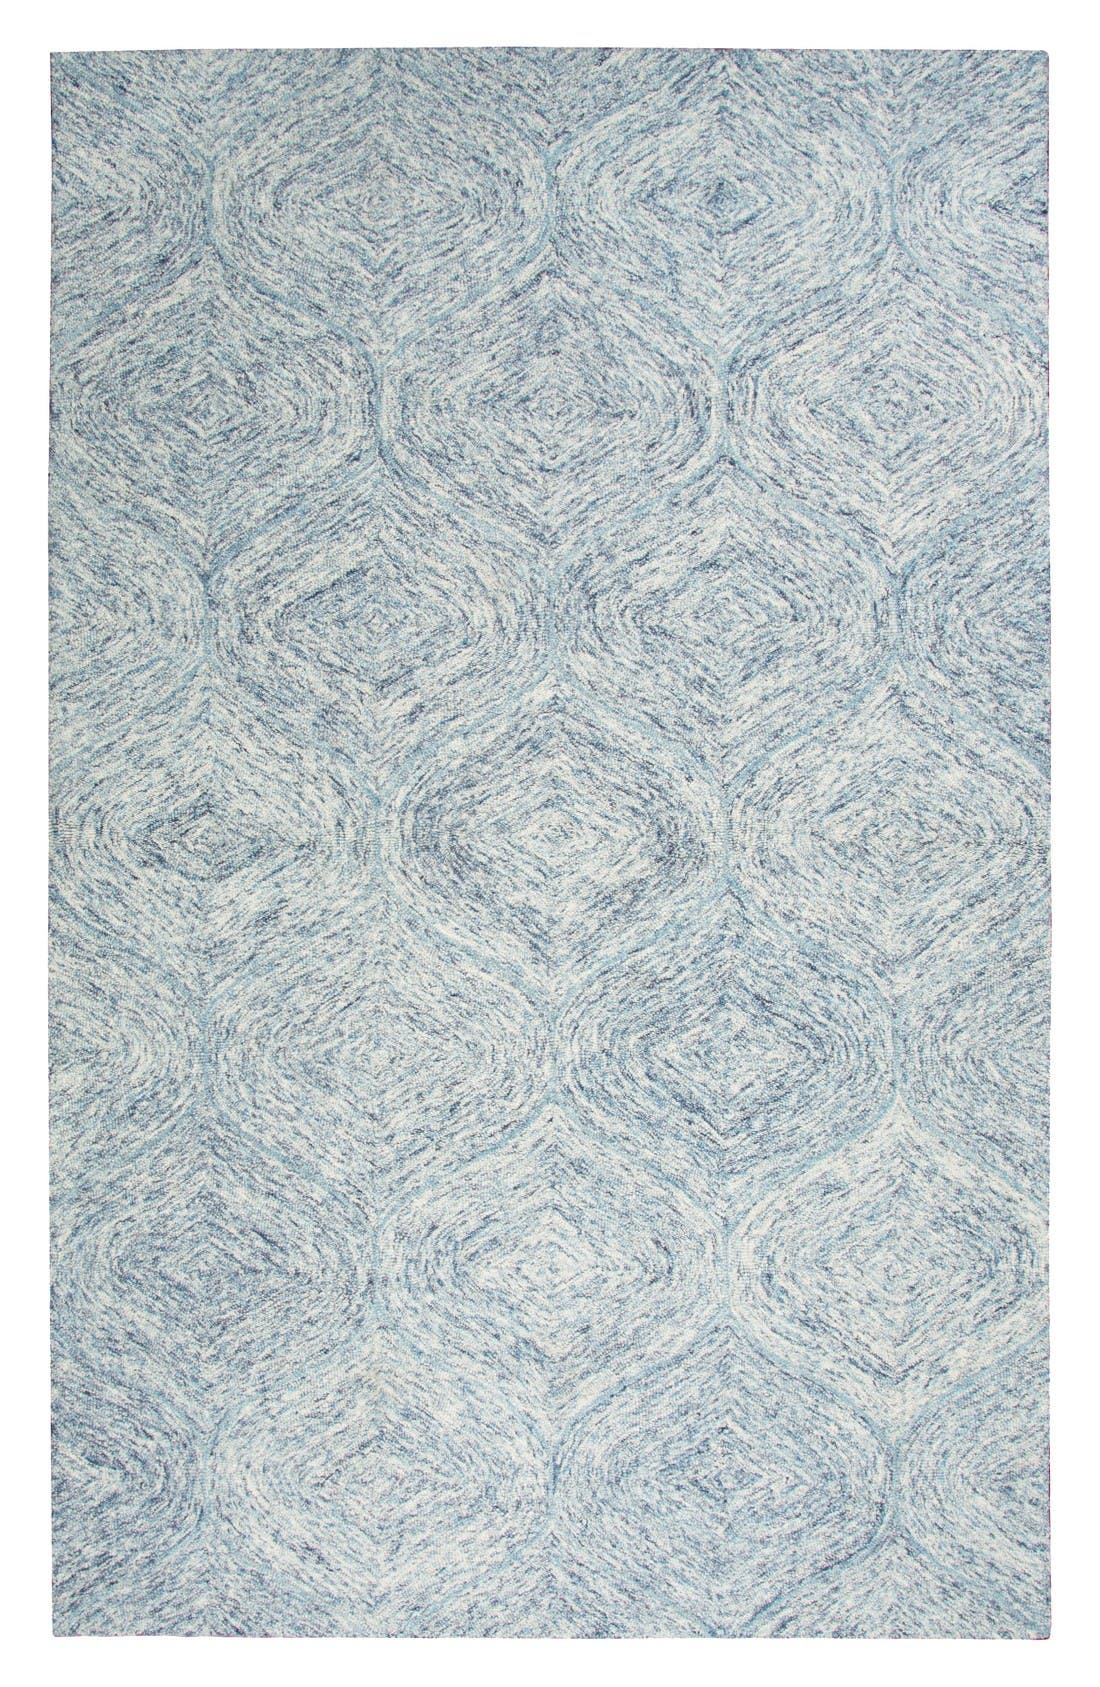 Alternate Image 1 Selected - Rizzy Home Irregular Diamond Hand Tufted Wool Area Rug